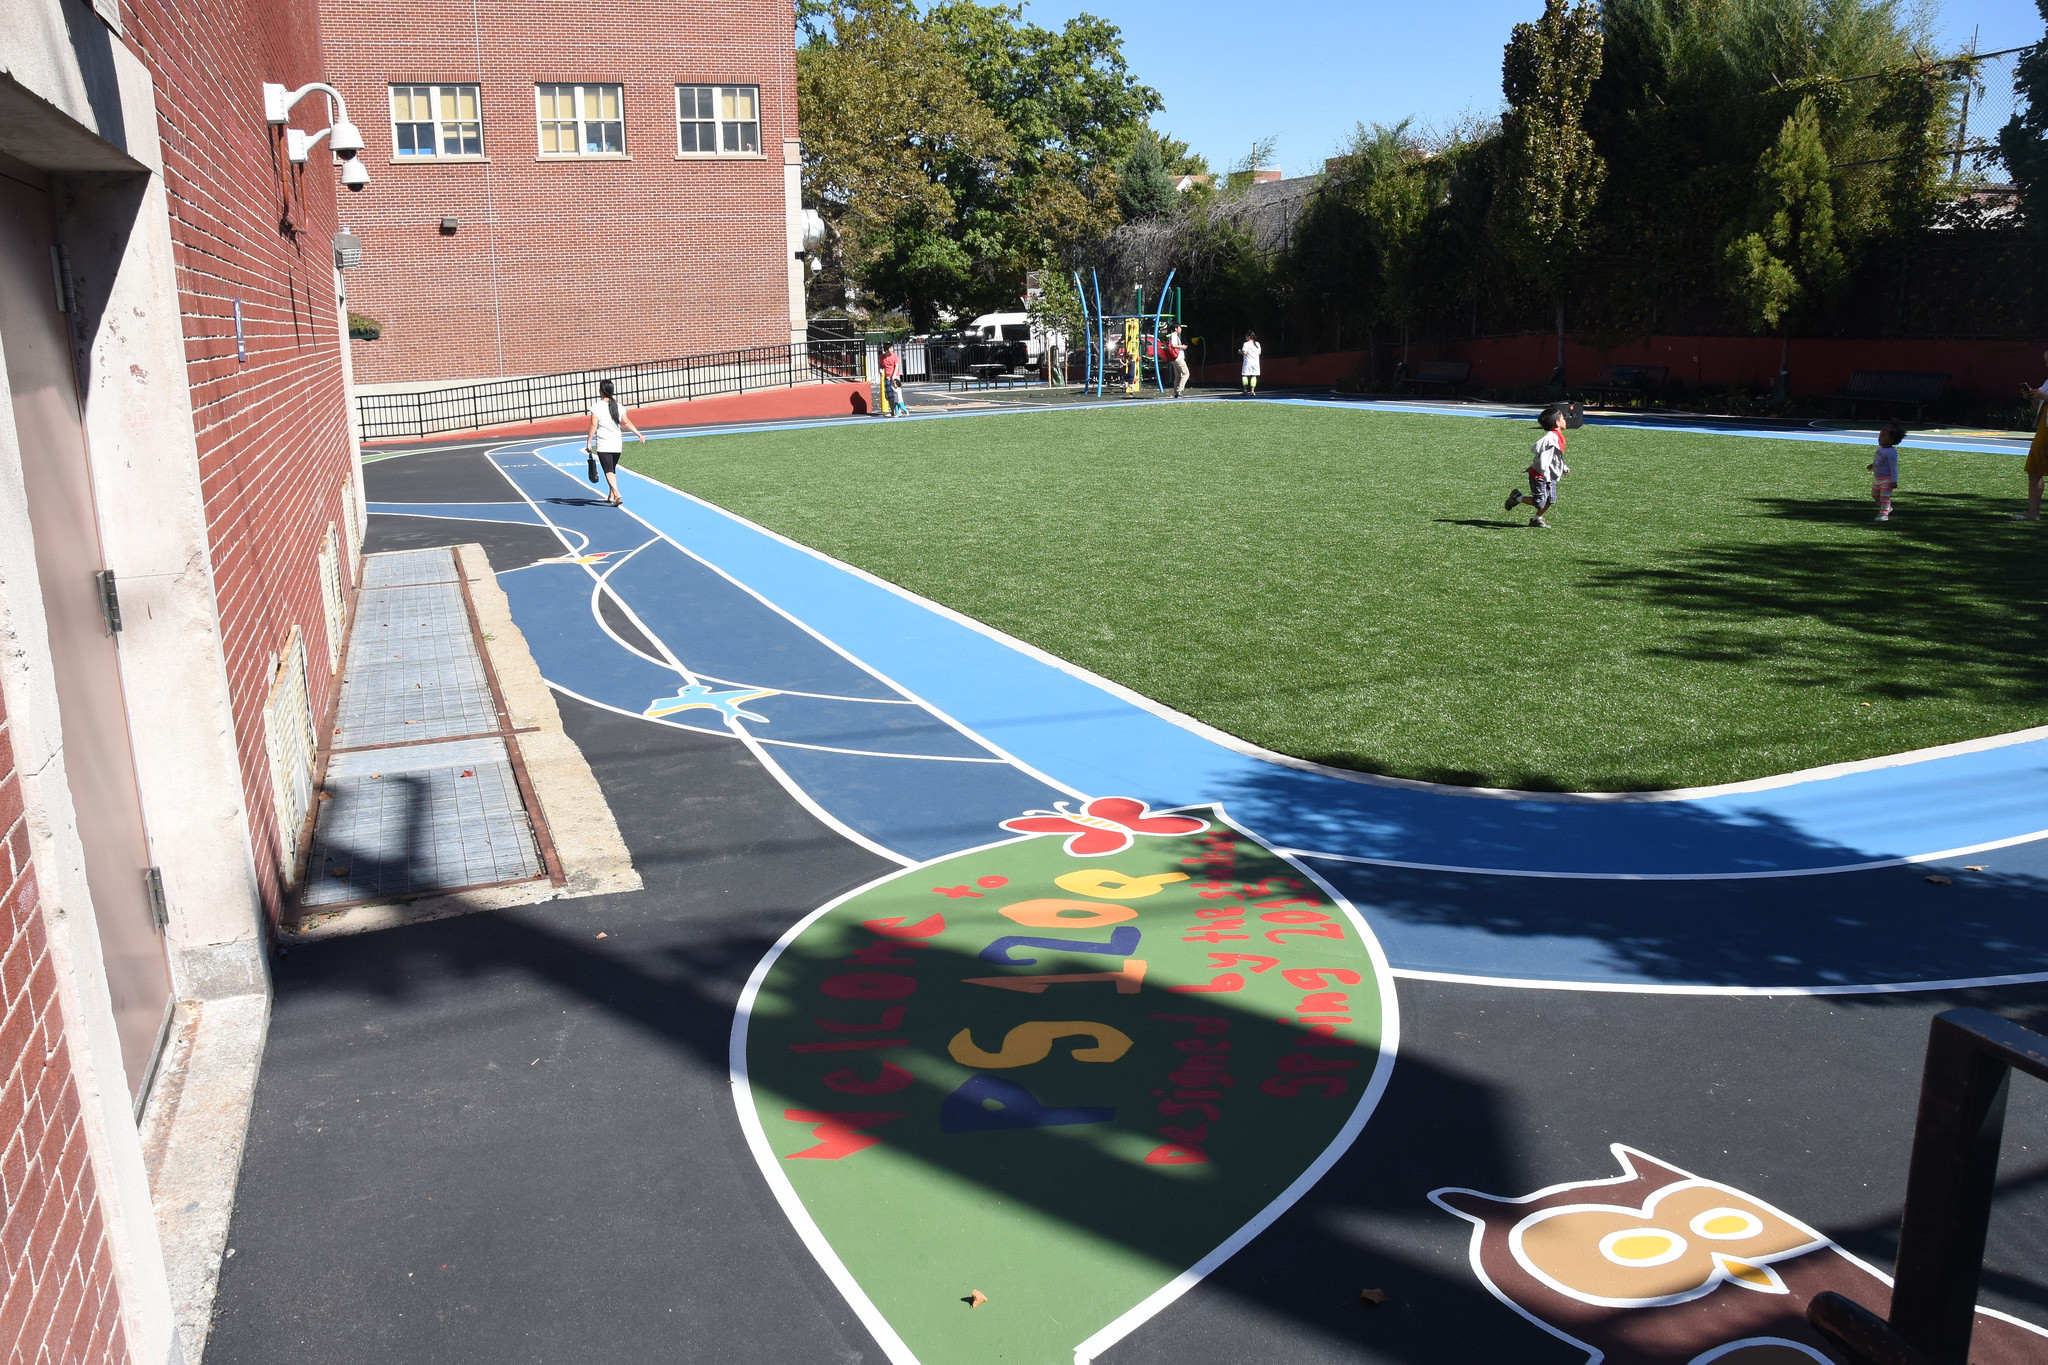 The final result of the playground that used more than 100 cubic yards of recycled porcelain during construction.